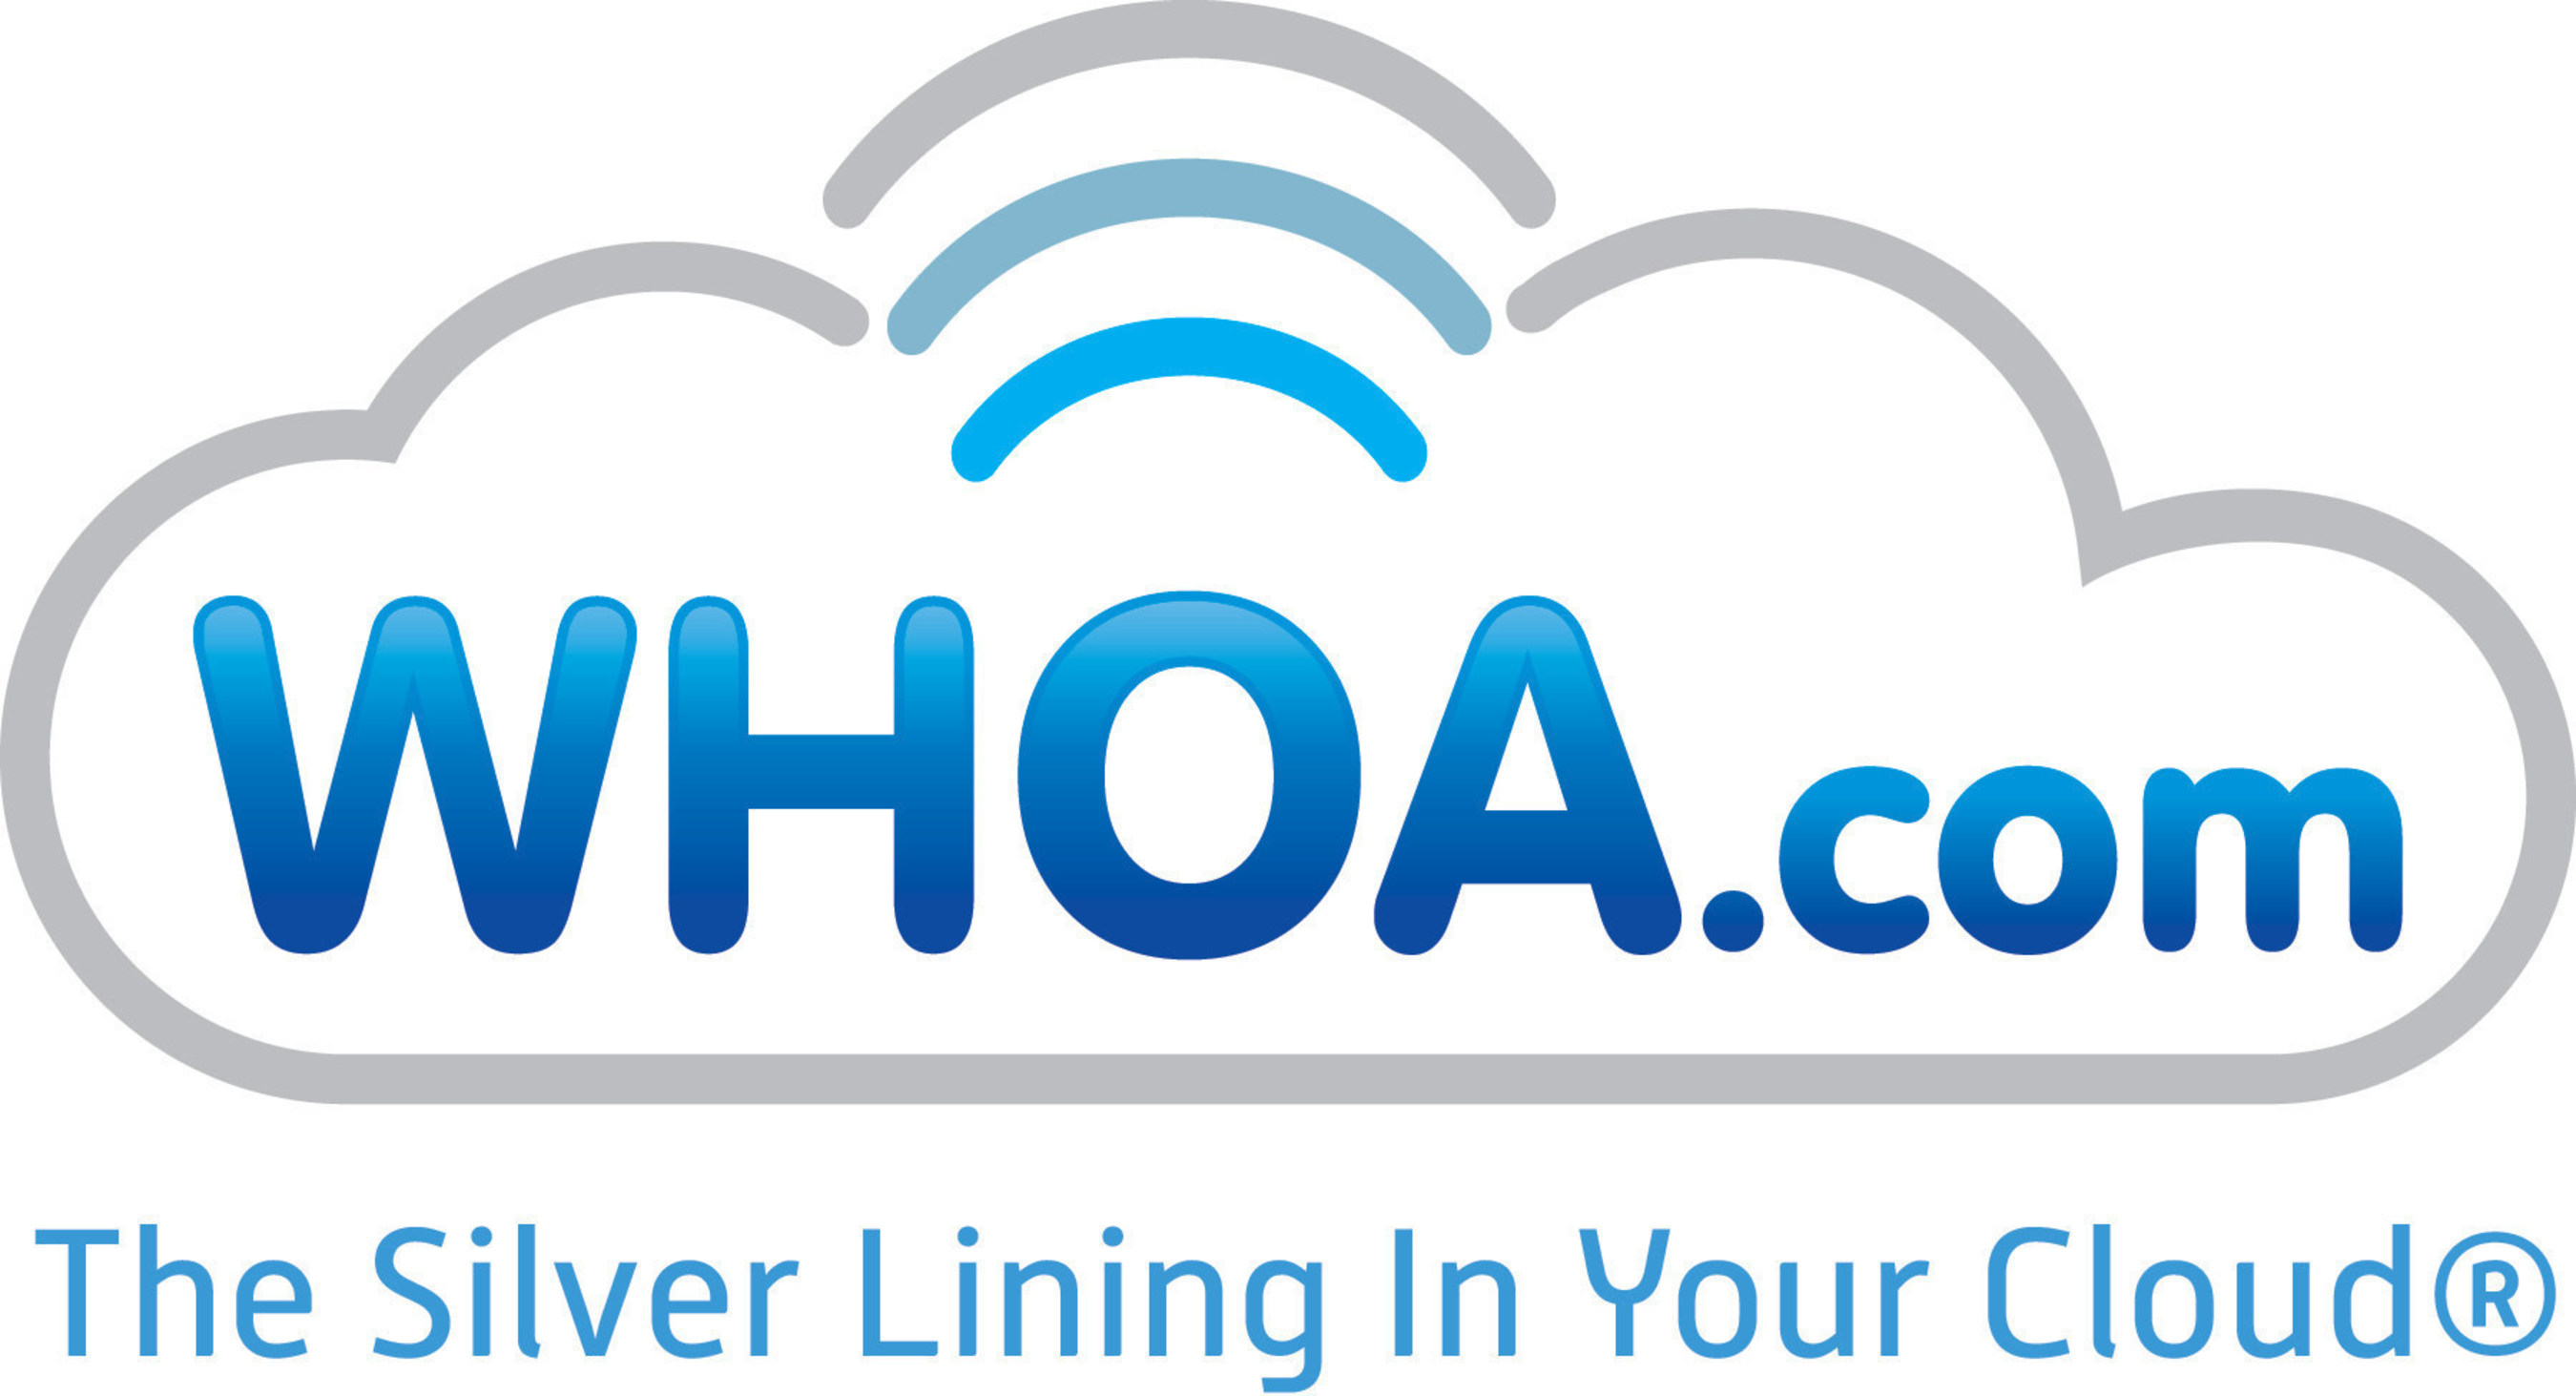 WSM Announces Migration Services Agreement with WHOA.com